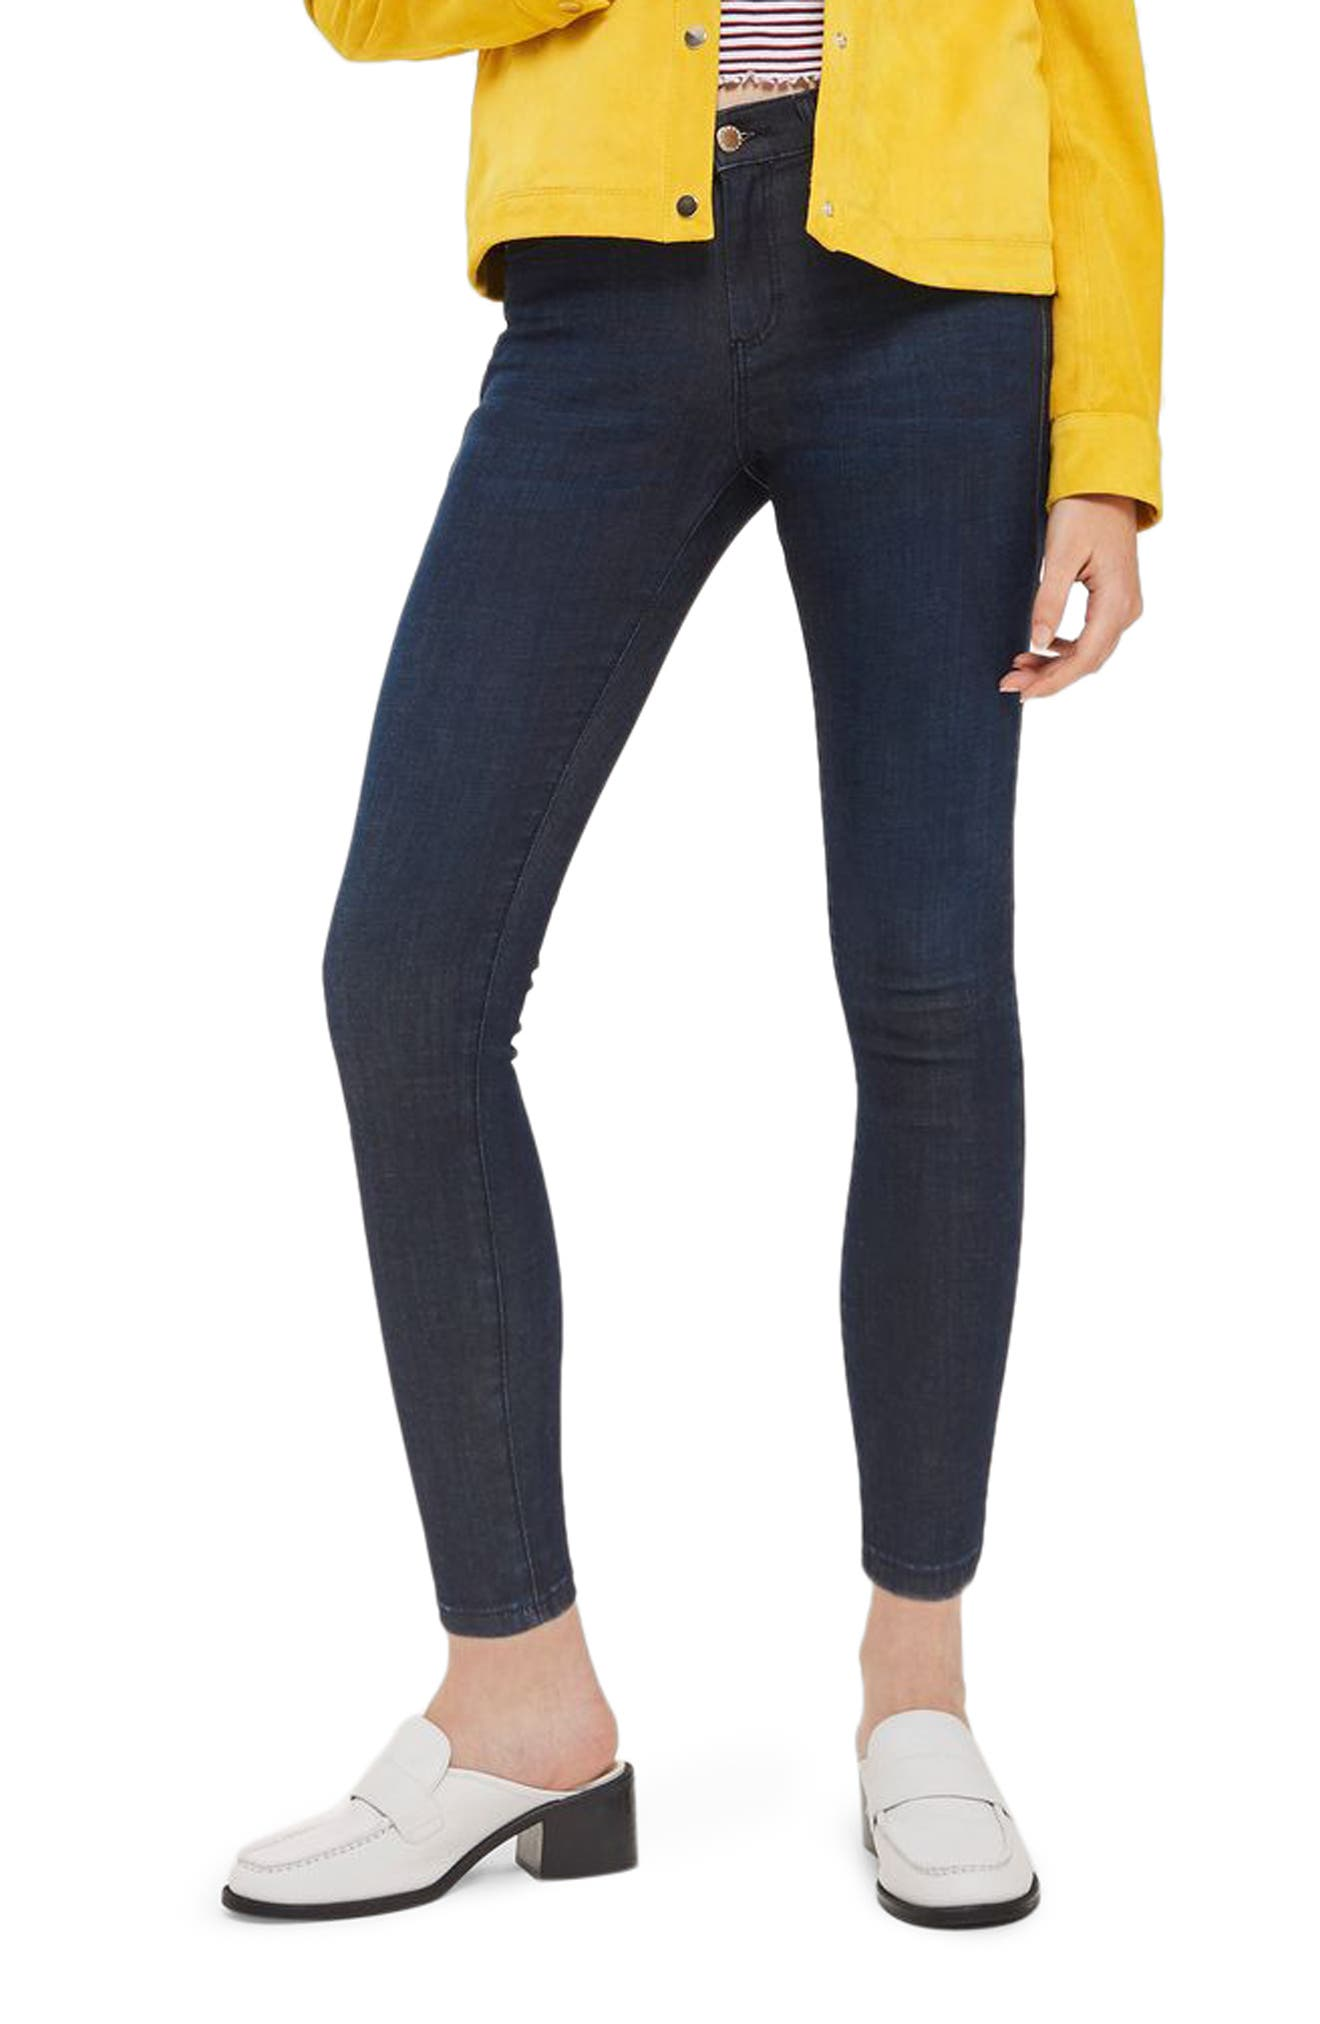 Leigh Skinny Ankle Jeans,                         Main,                         color, Dark Indigo